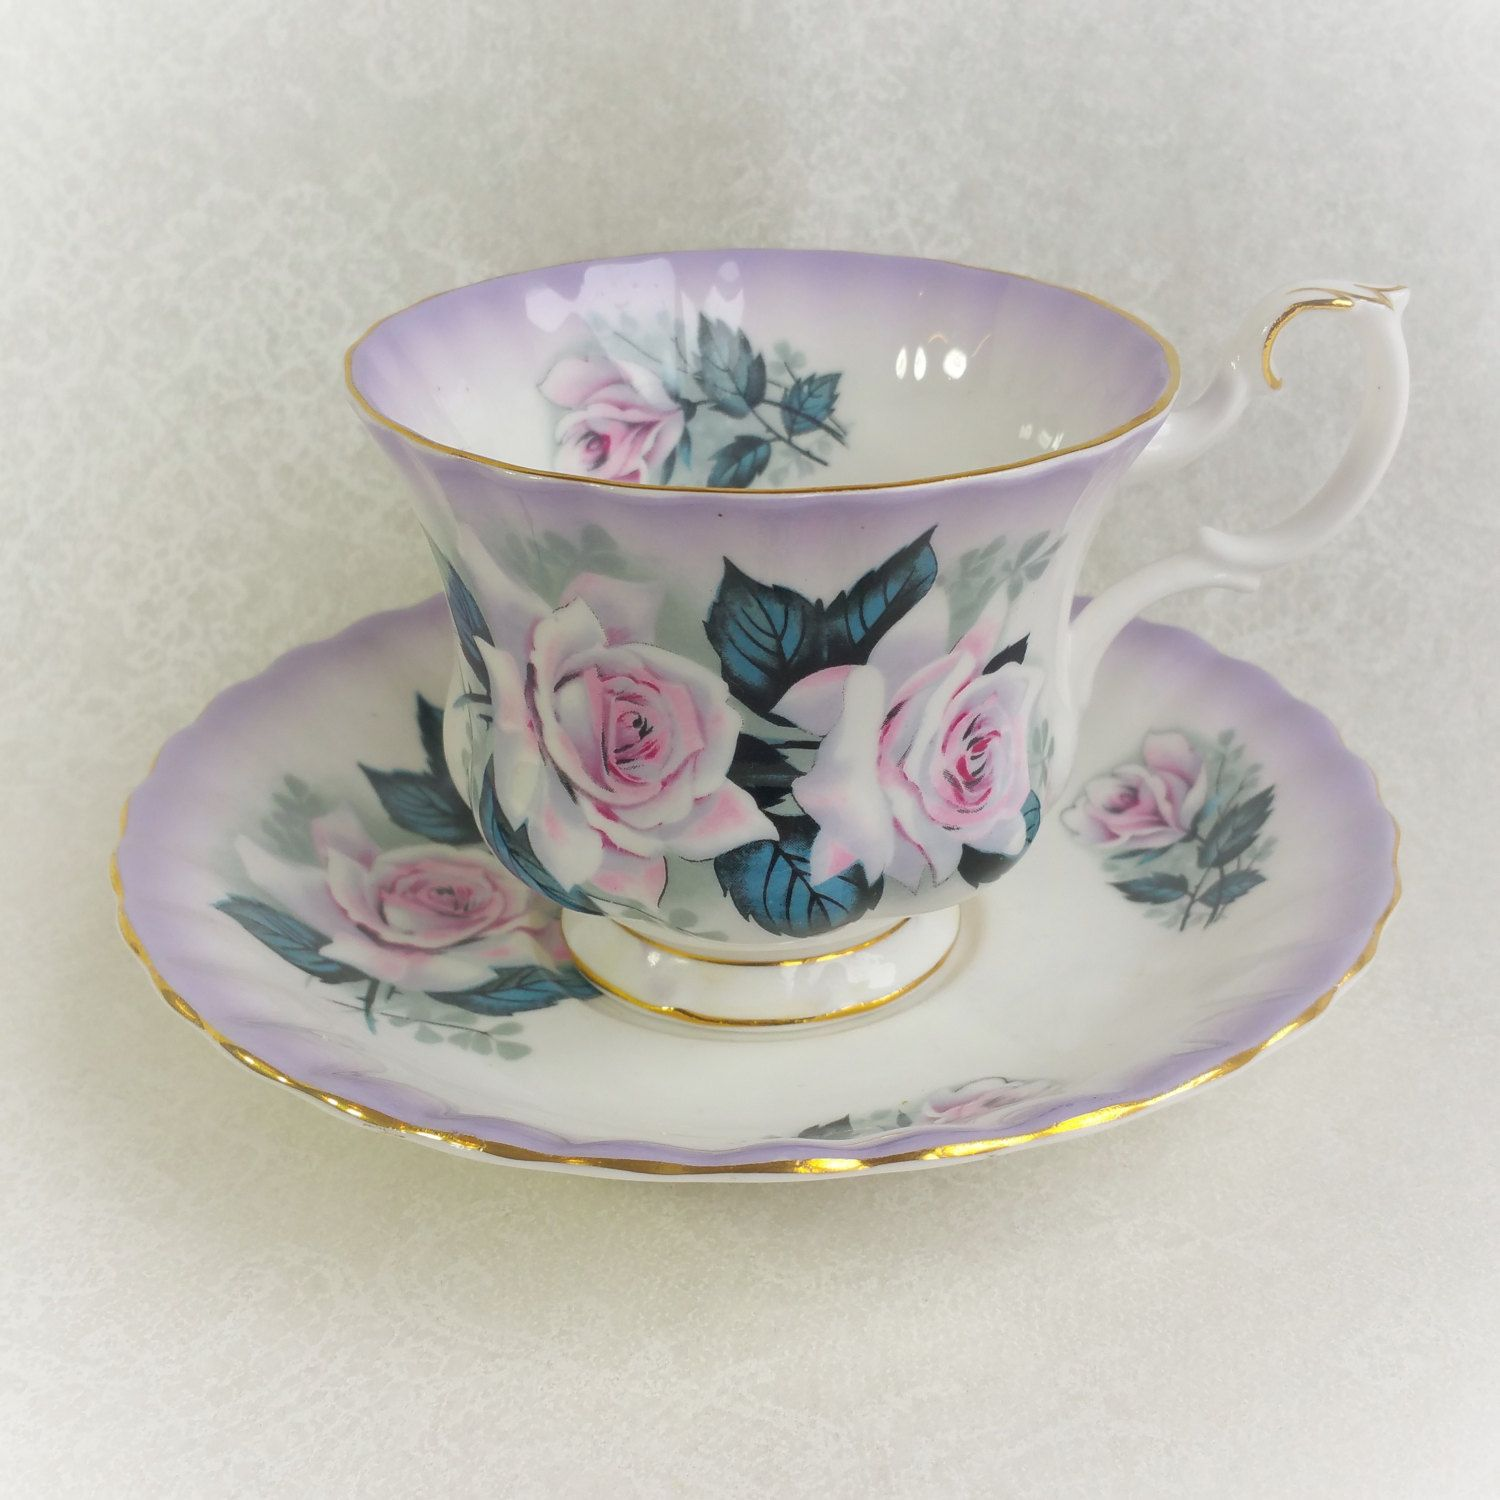 Vintage Tea Cup and Saucer ROYAL ALBERT Lavender with pink and white roses / Vintage Tea Party / Collectable teacup by HoneyandBumble on Etsy